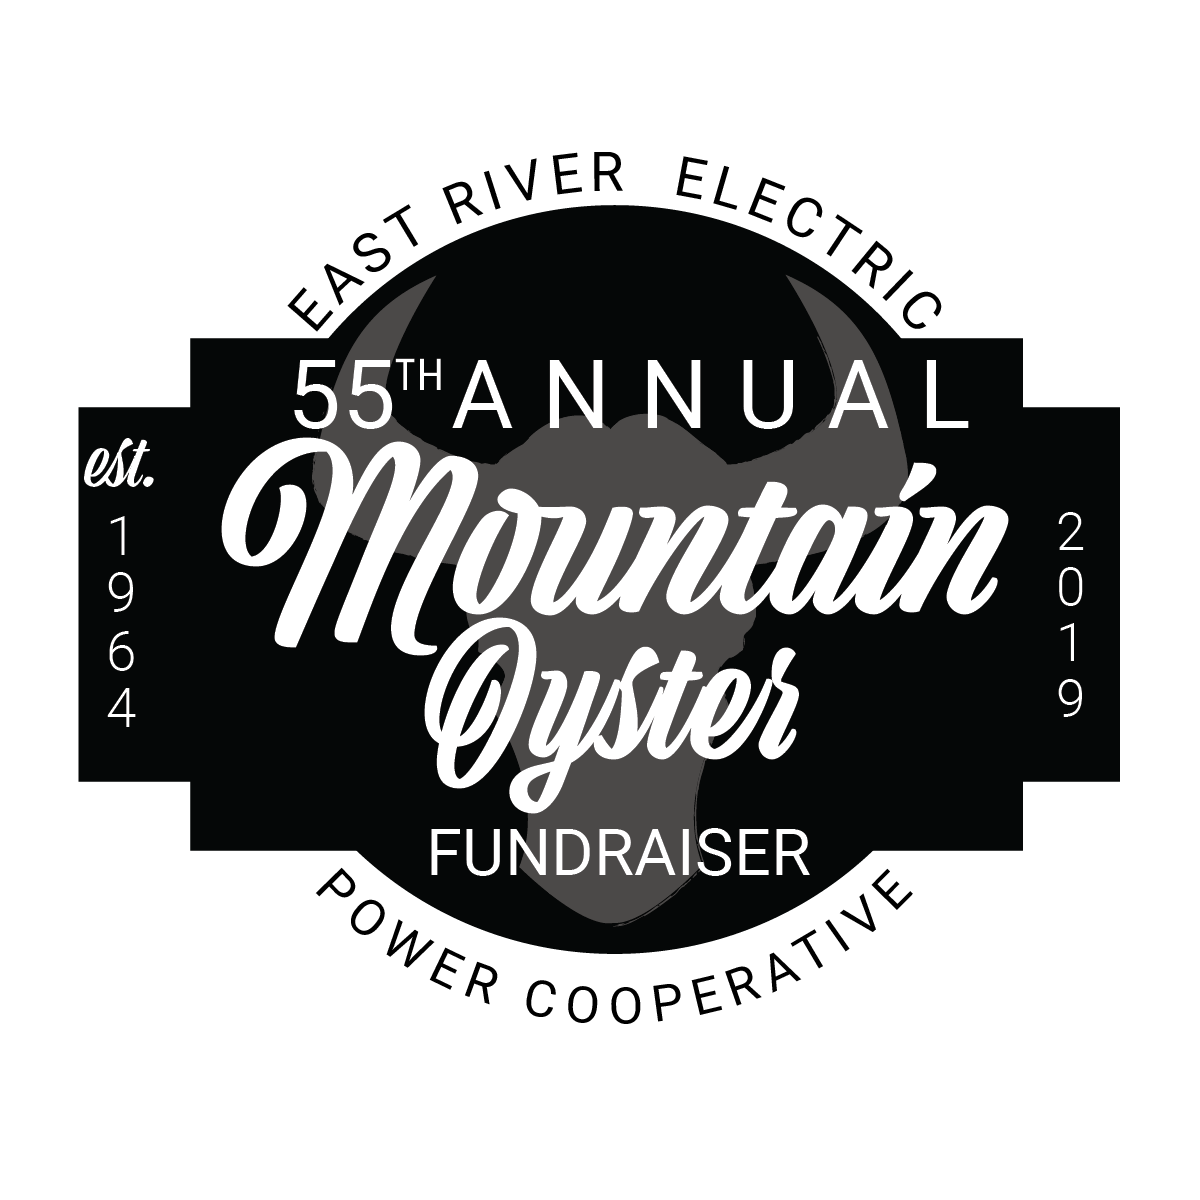 Mt. Oyster Feed